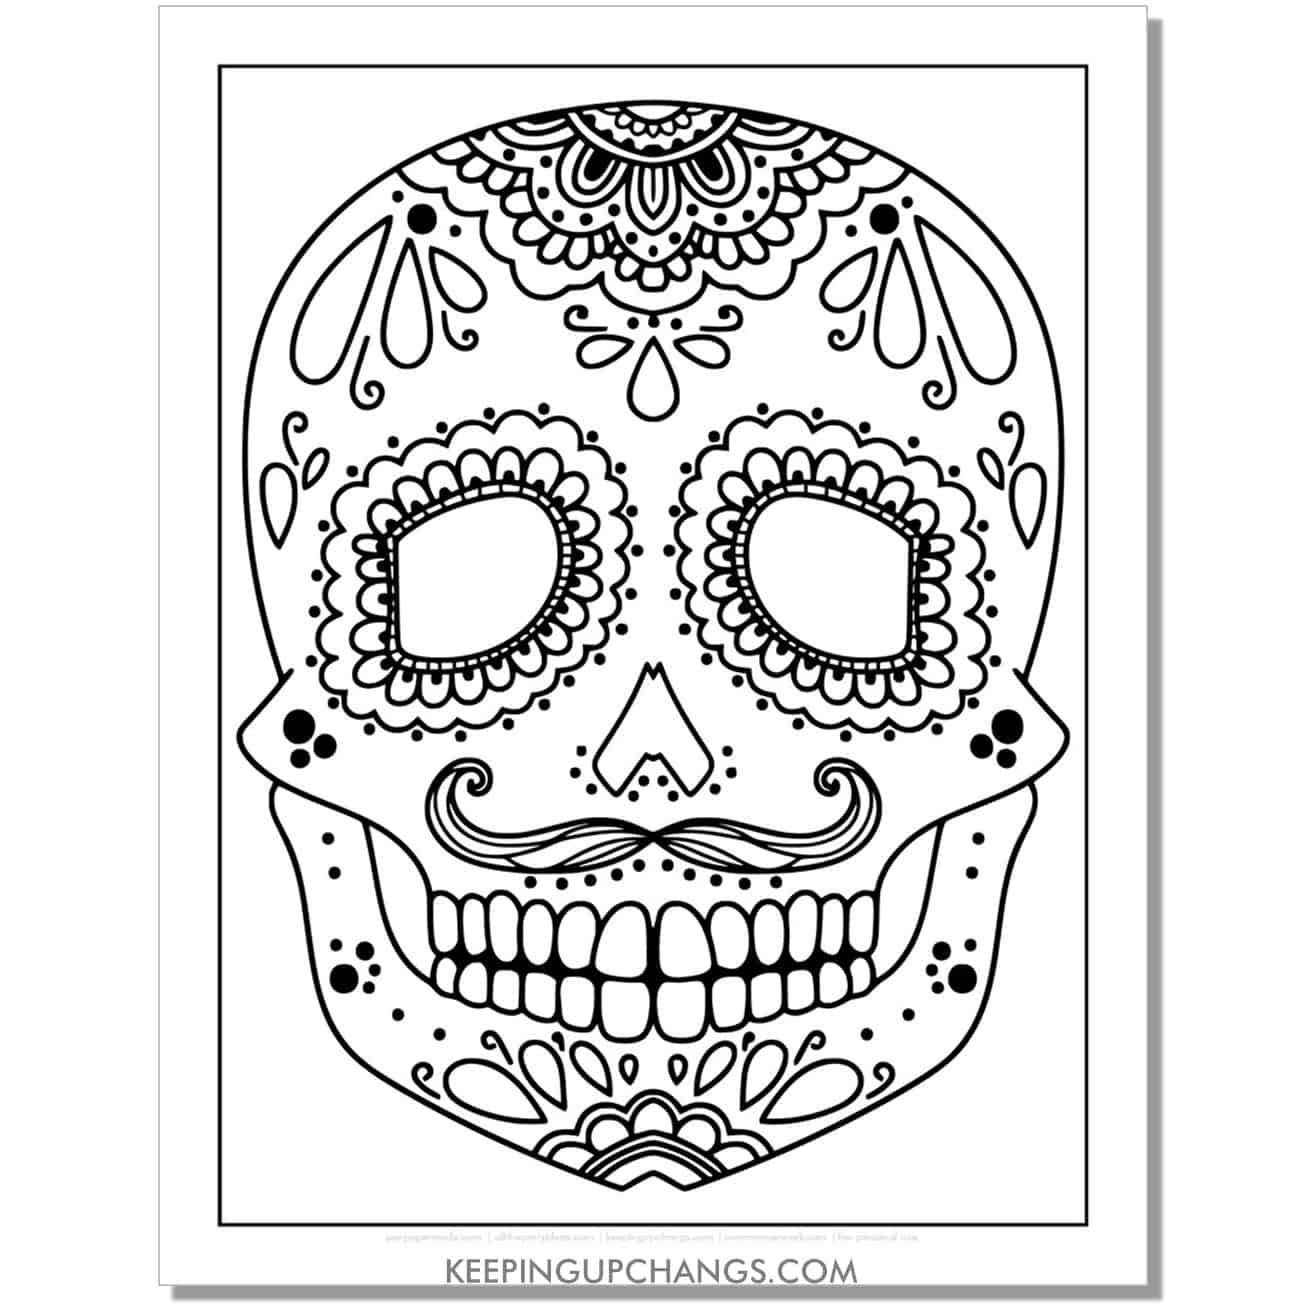 simple hand drawn sugar skull with mustache coloring page.